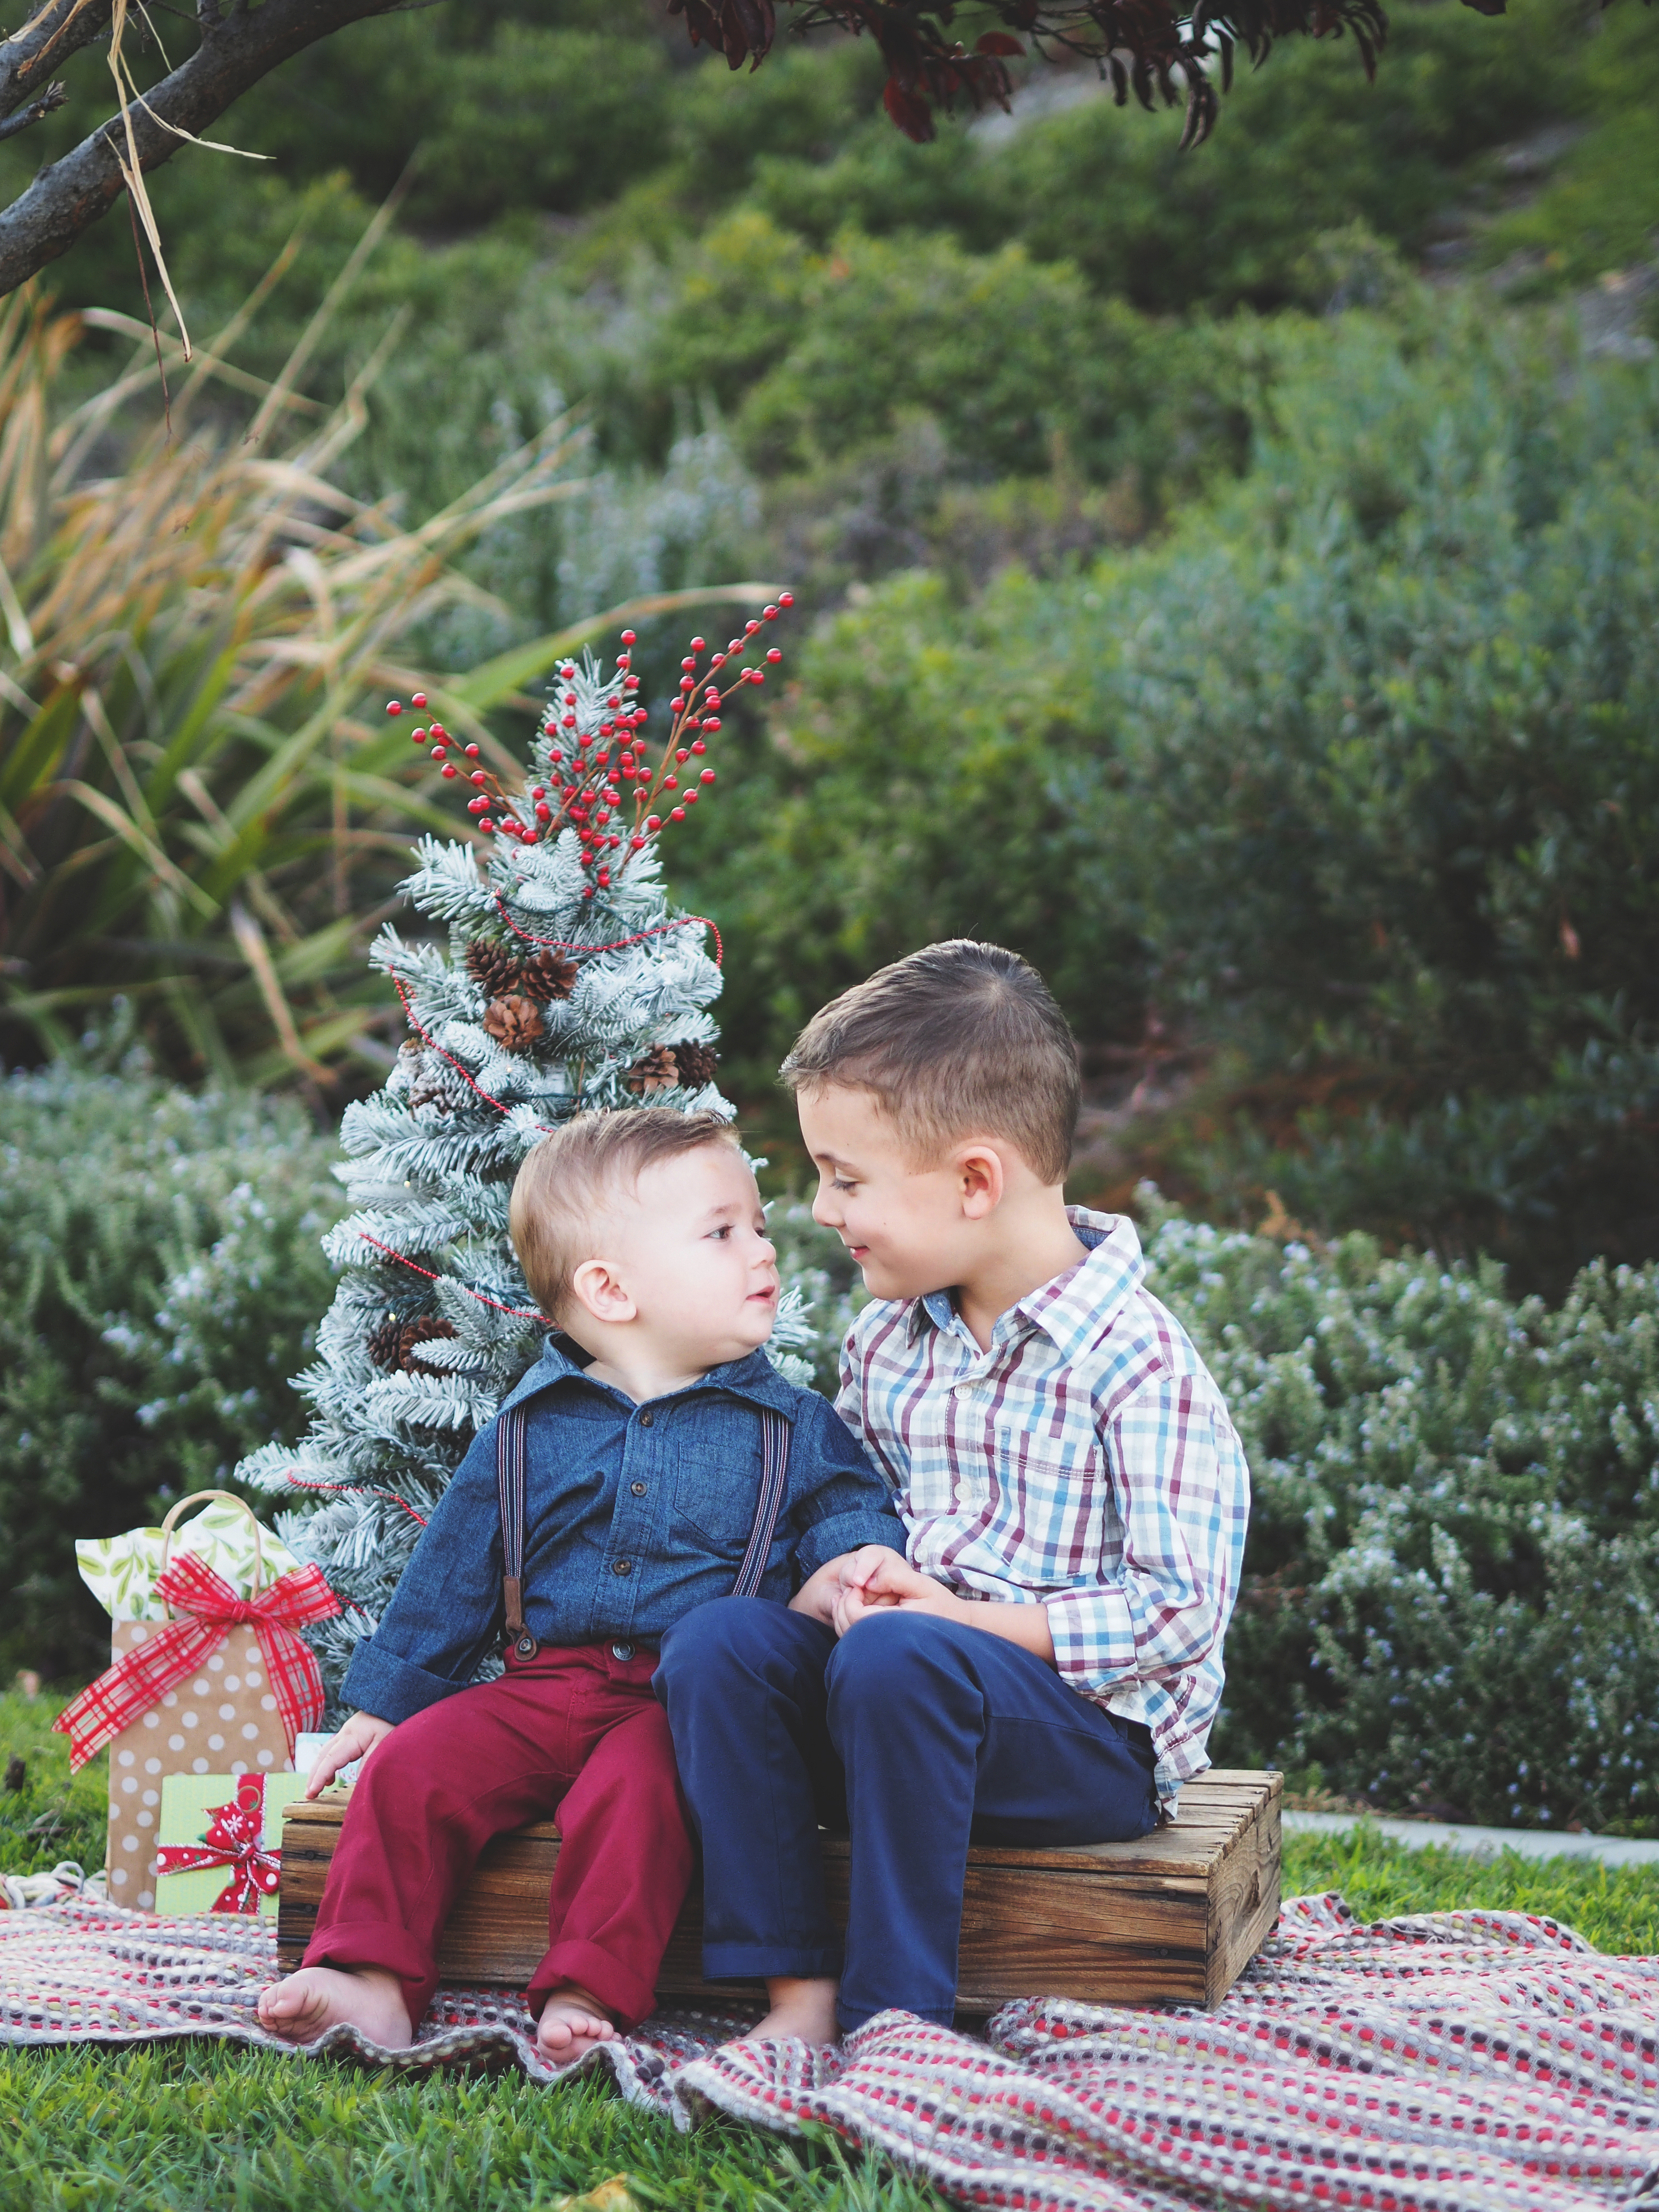 Dominic & Oliver Xmas 2017 (1 of 1)final